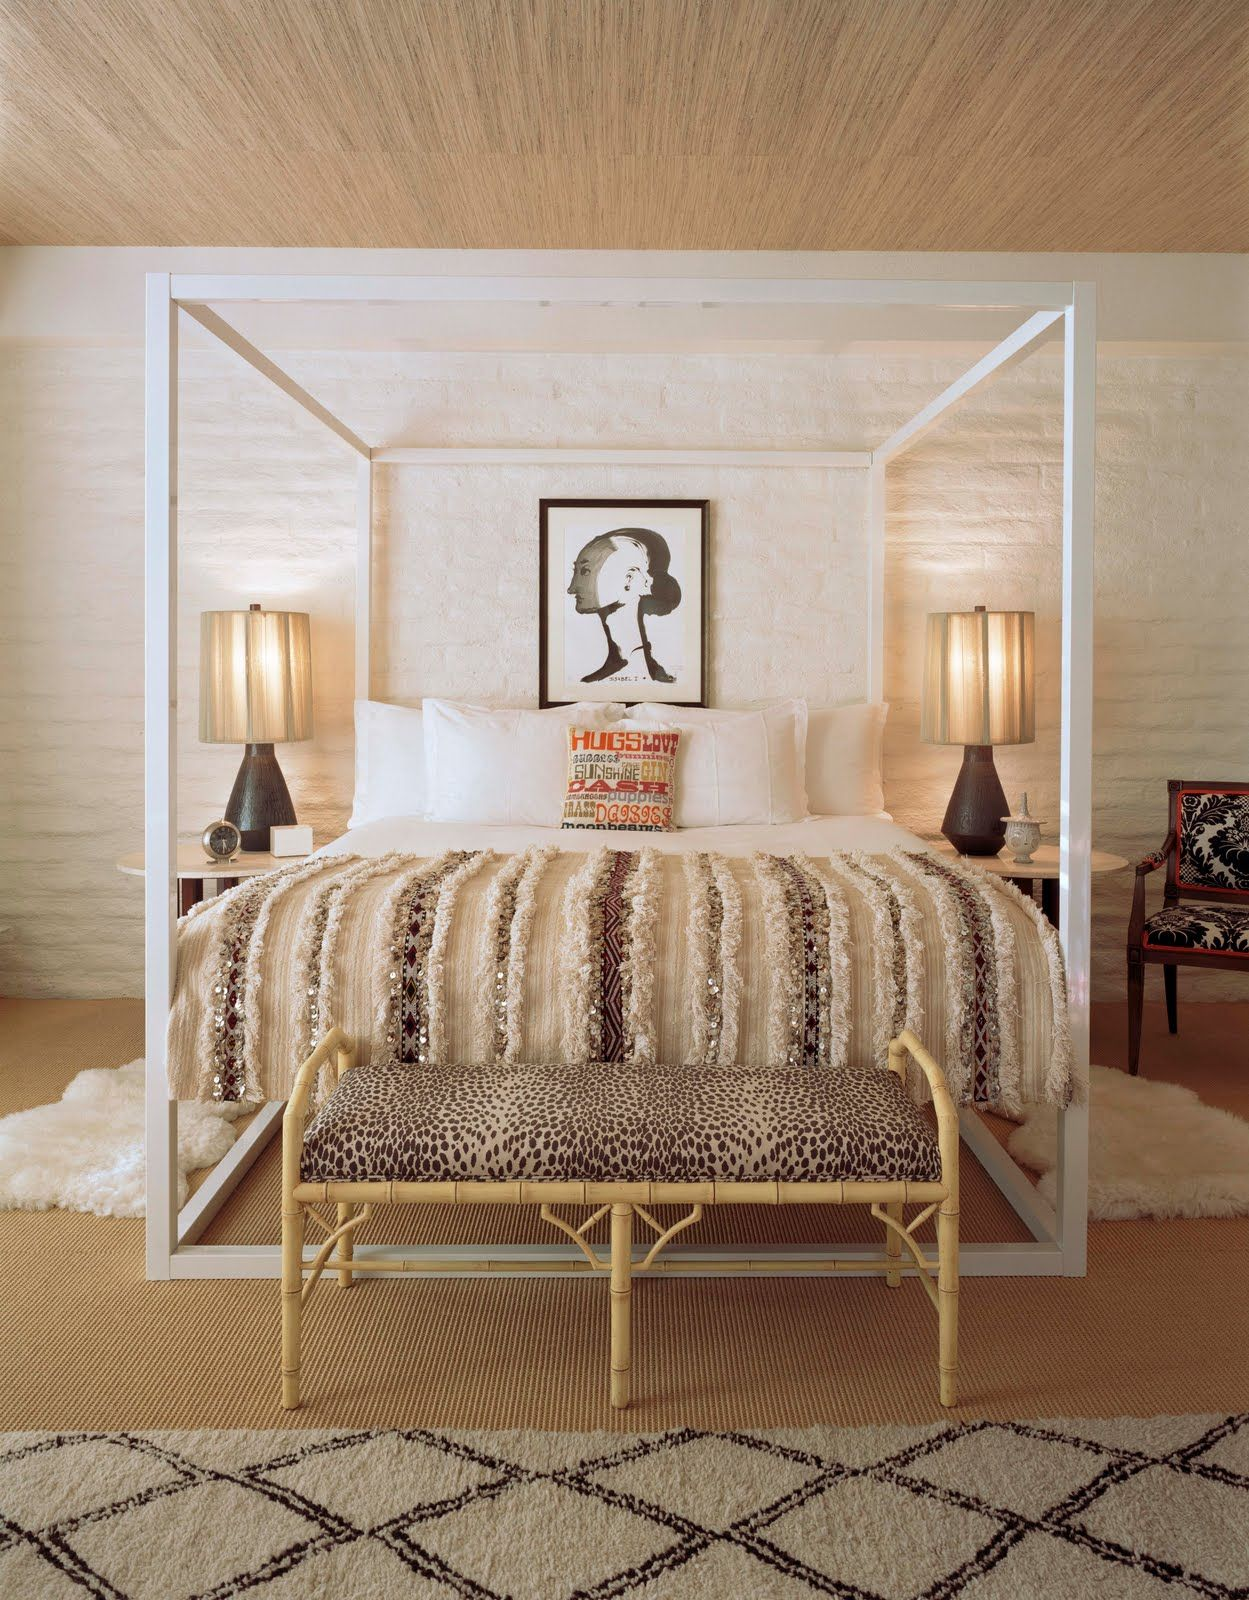 Texture the parker interiors pinterest palm springs these moroccan wedding blankets like the one above in the jonathan adler designed room in the the parker palm springs or the roman and wi aloadofball Choice Image